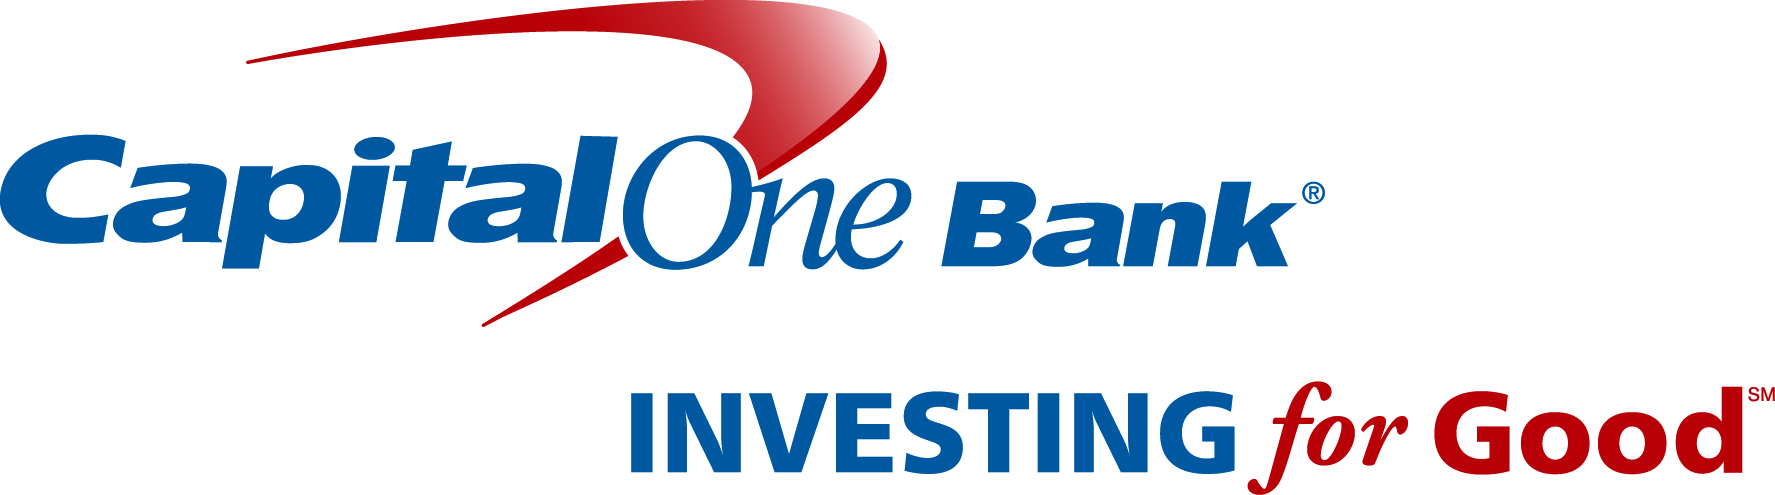 Capital One Bank.jpg